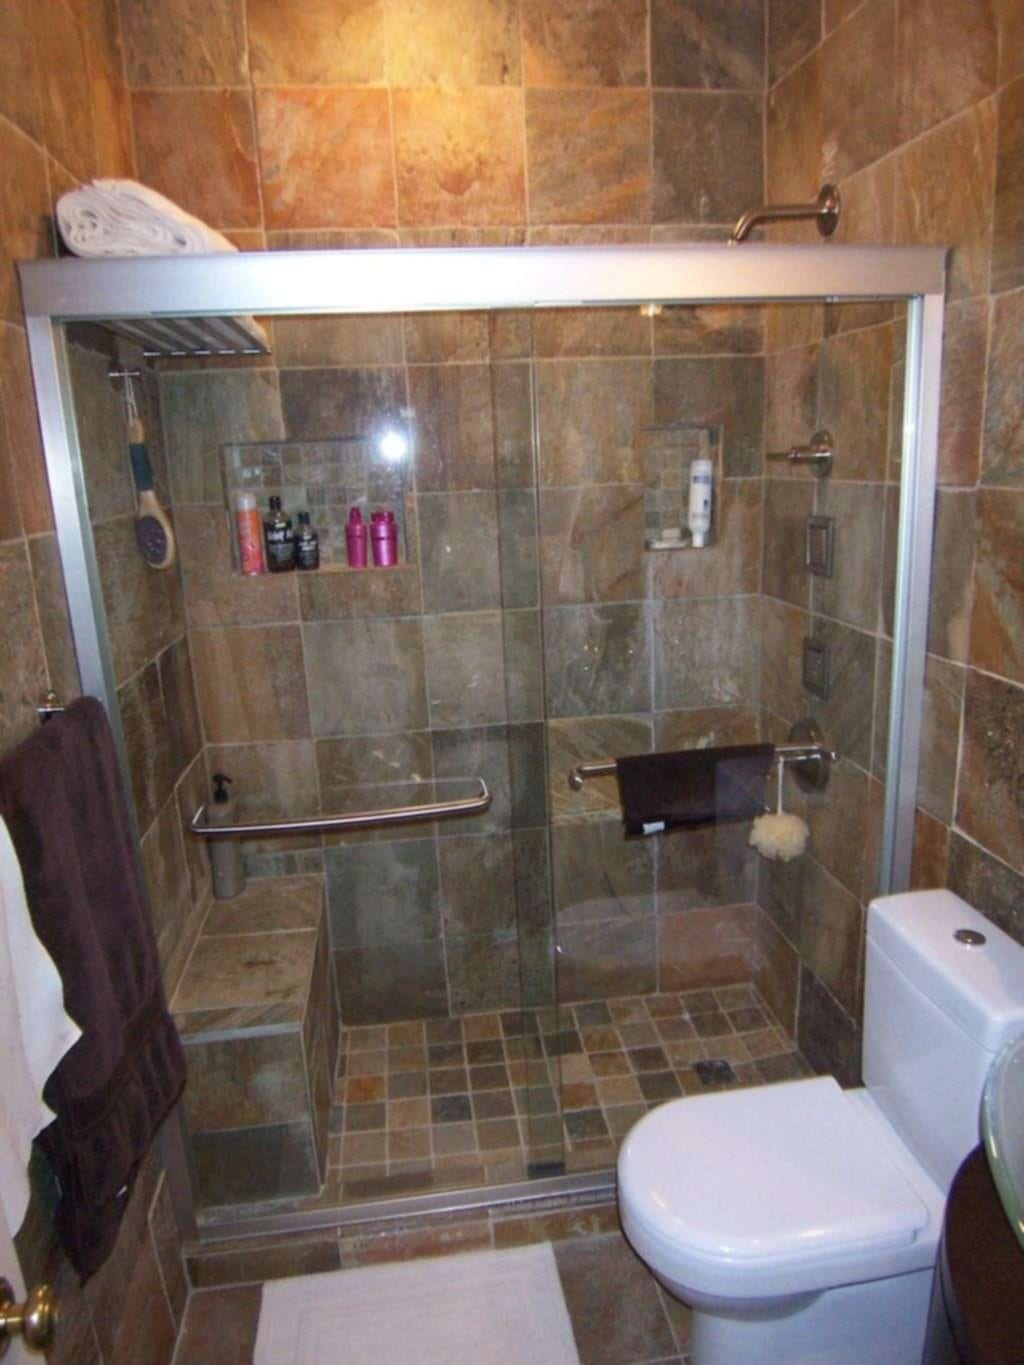 15 Latest Small Bathroom Design Small Space Shower Stalls For Small Bathrooms